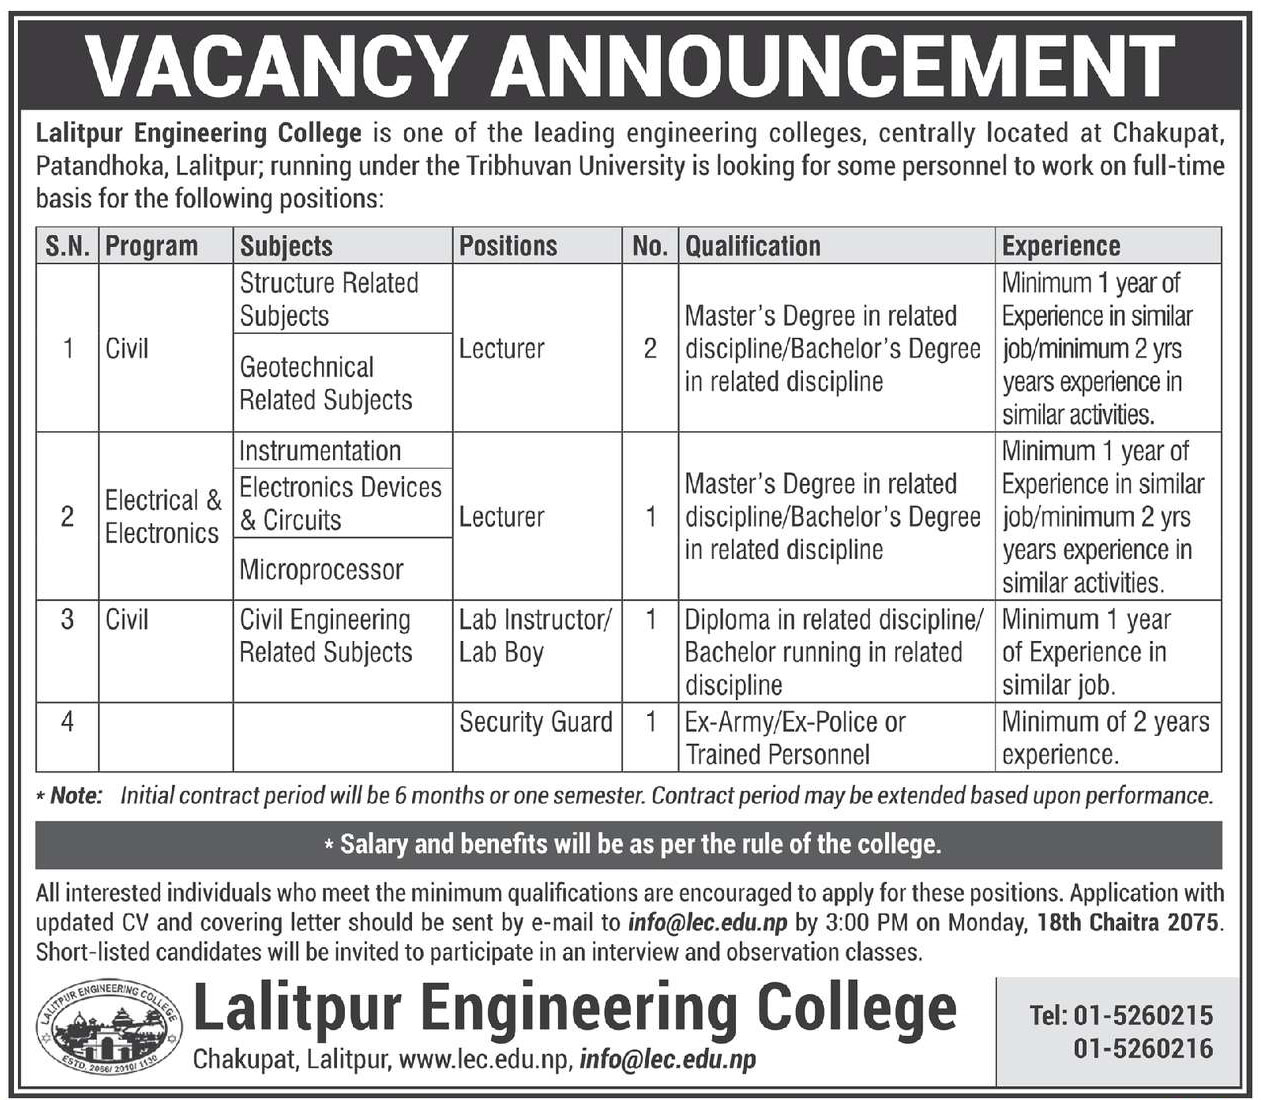 Lalitpur Engineering College, Vacancy Announcement